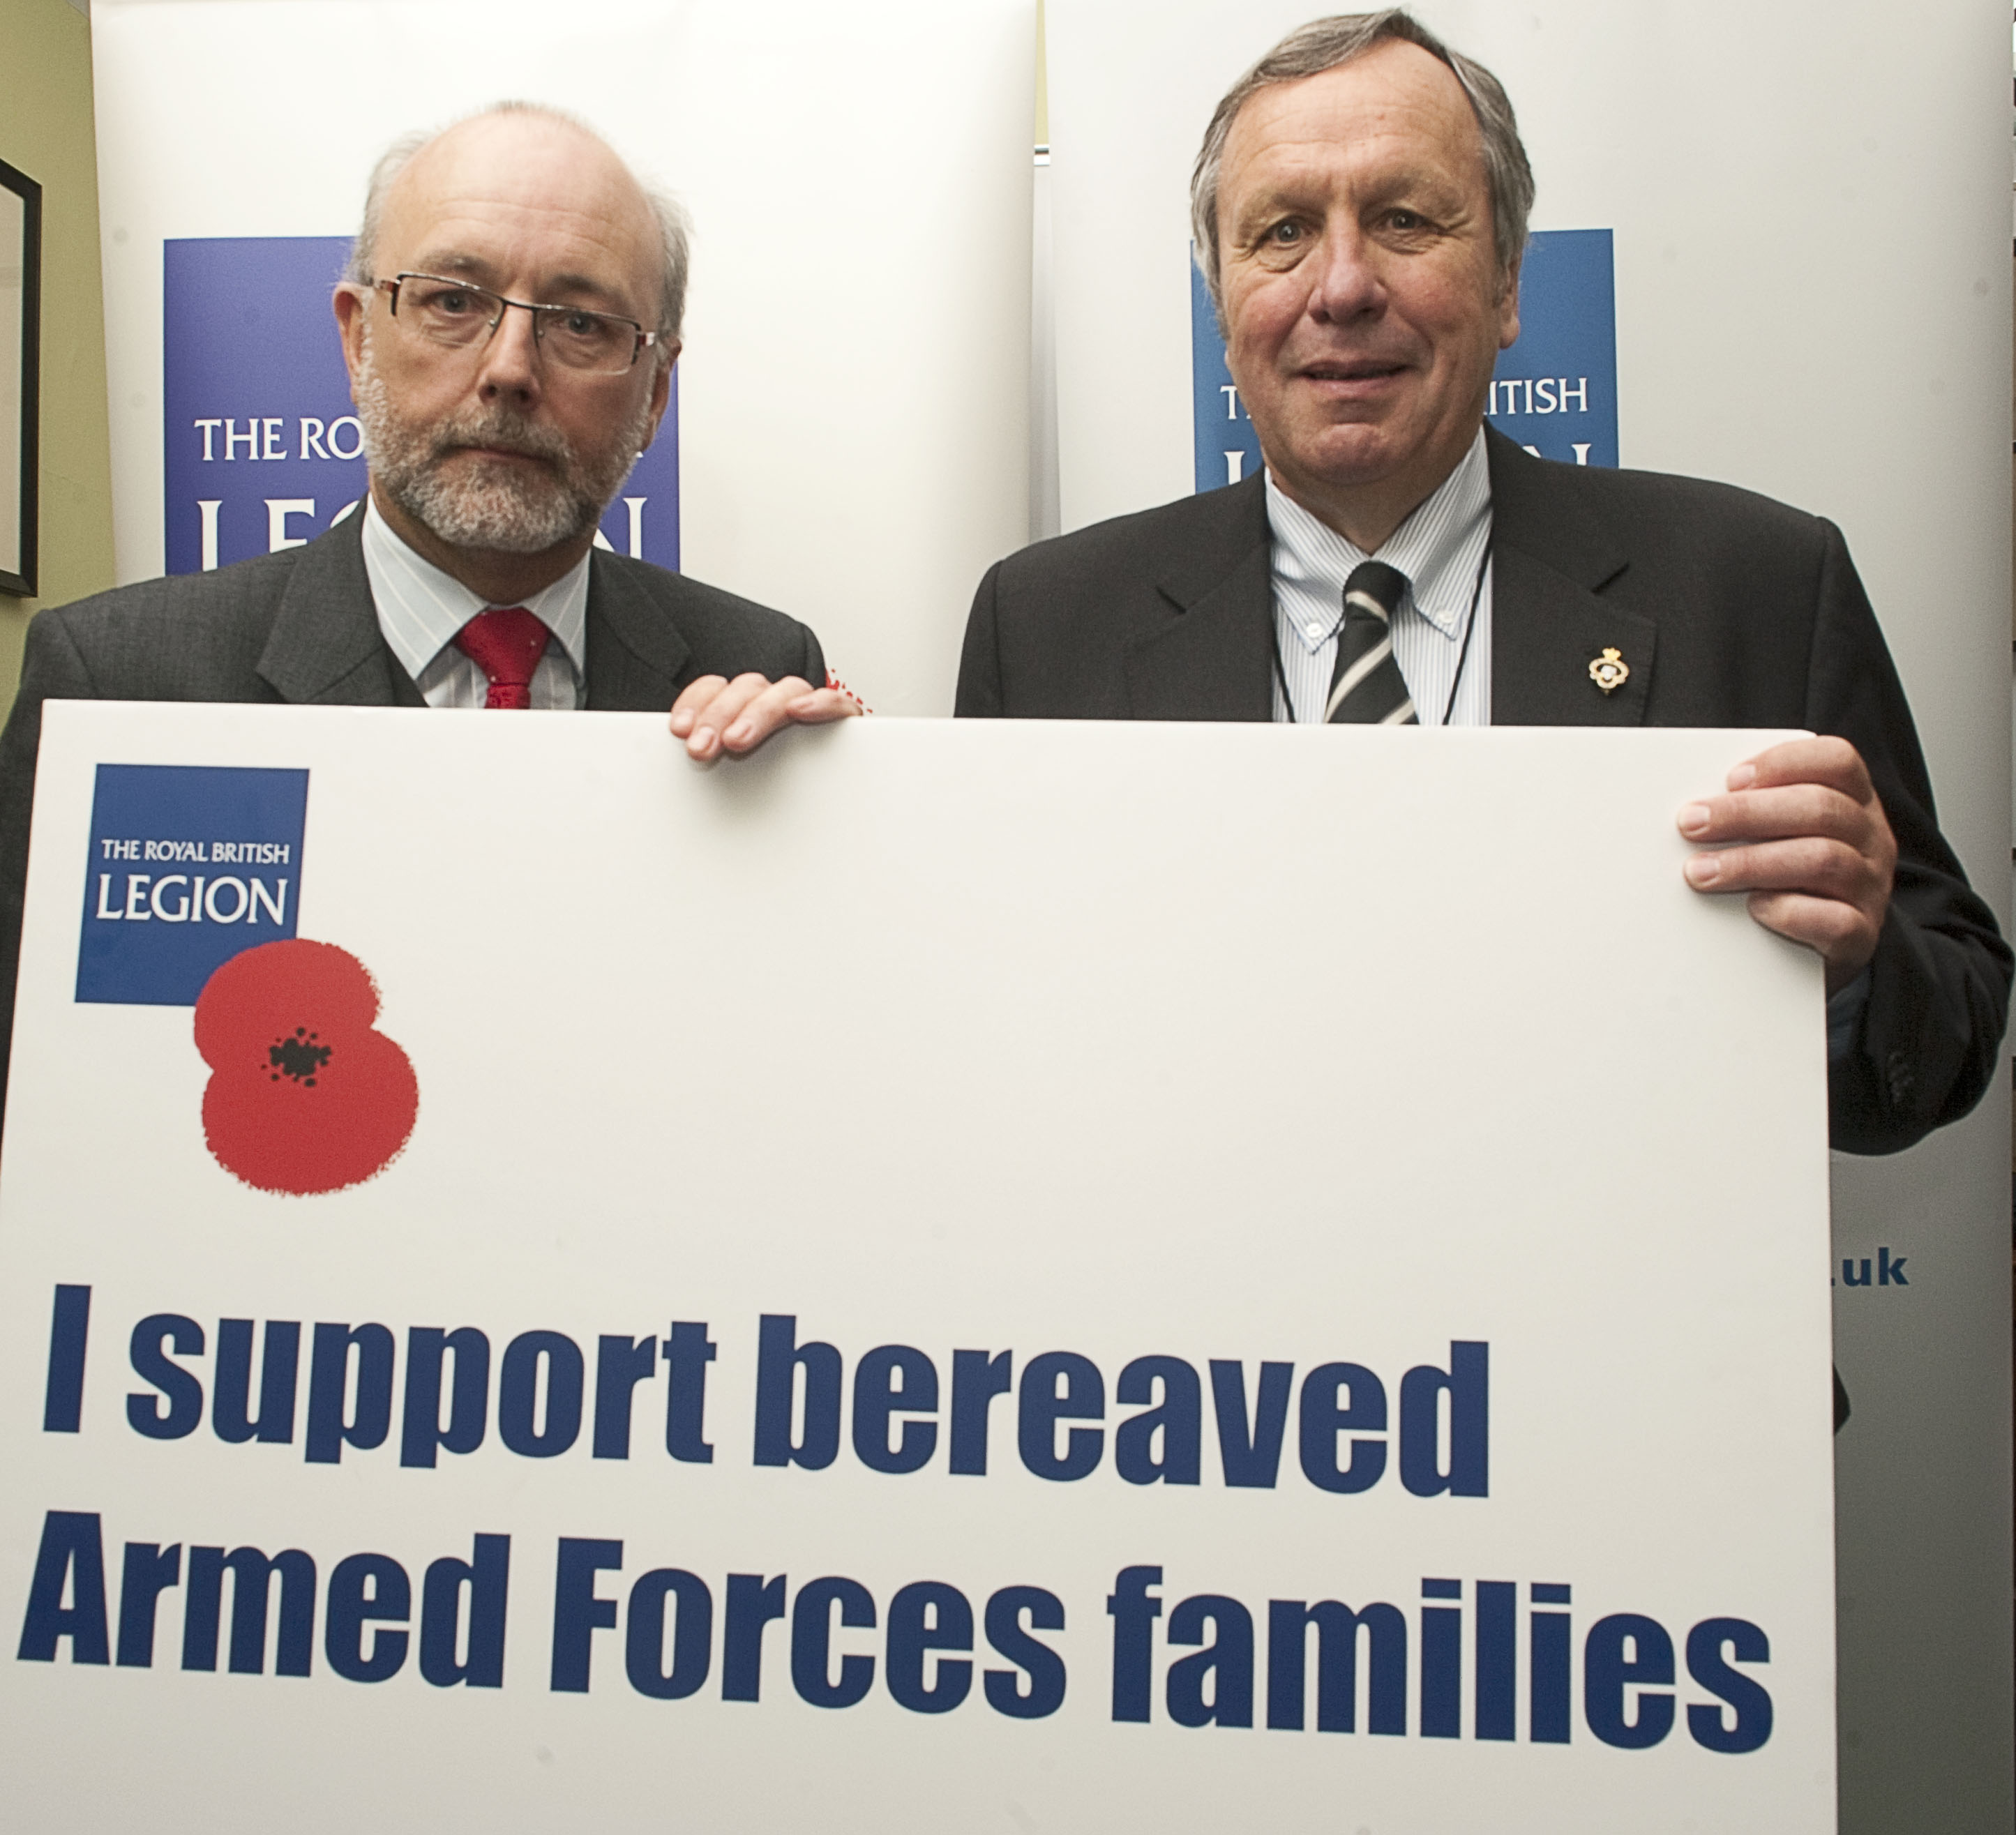 Alex shows support for bereaved Armed Forces families